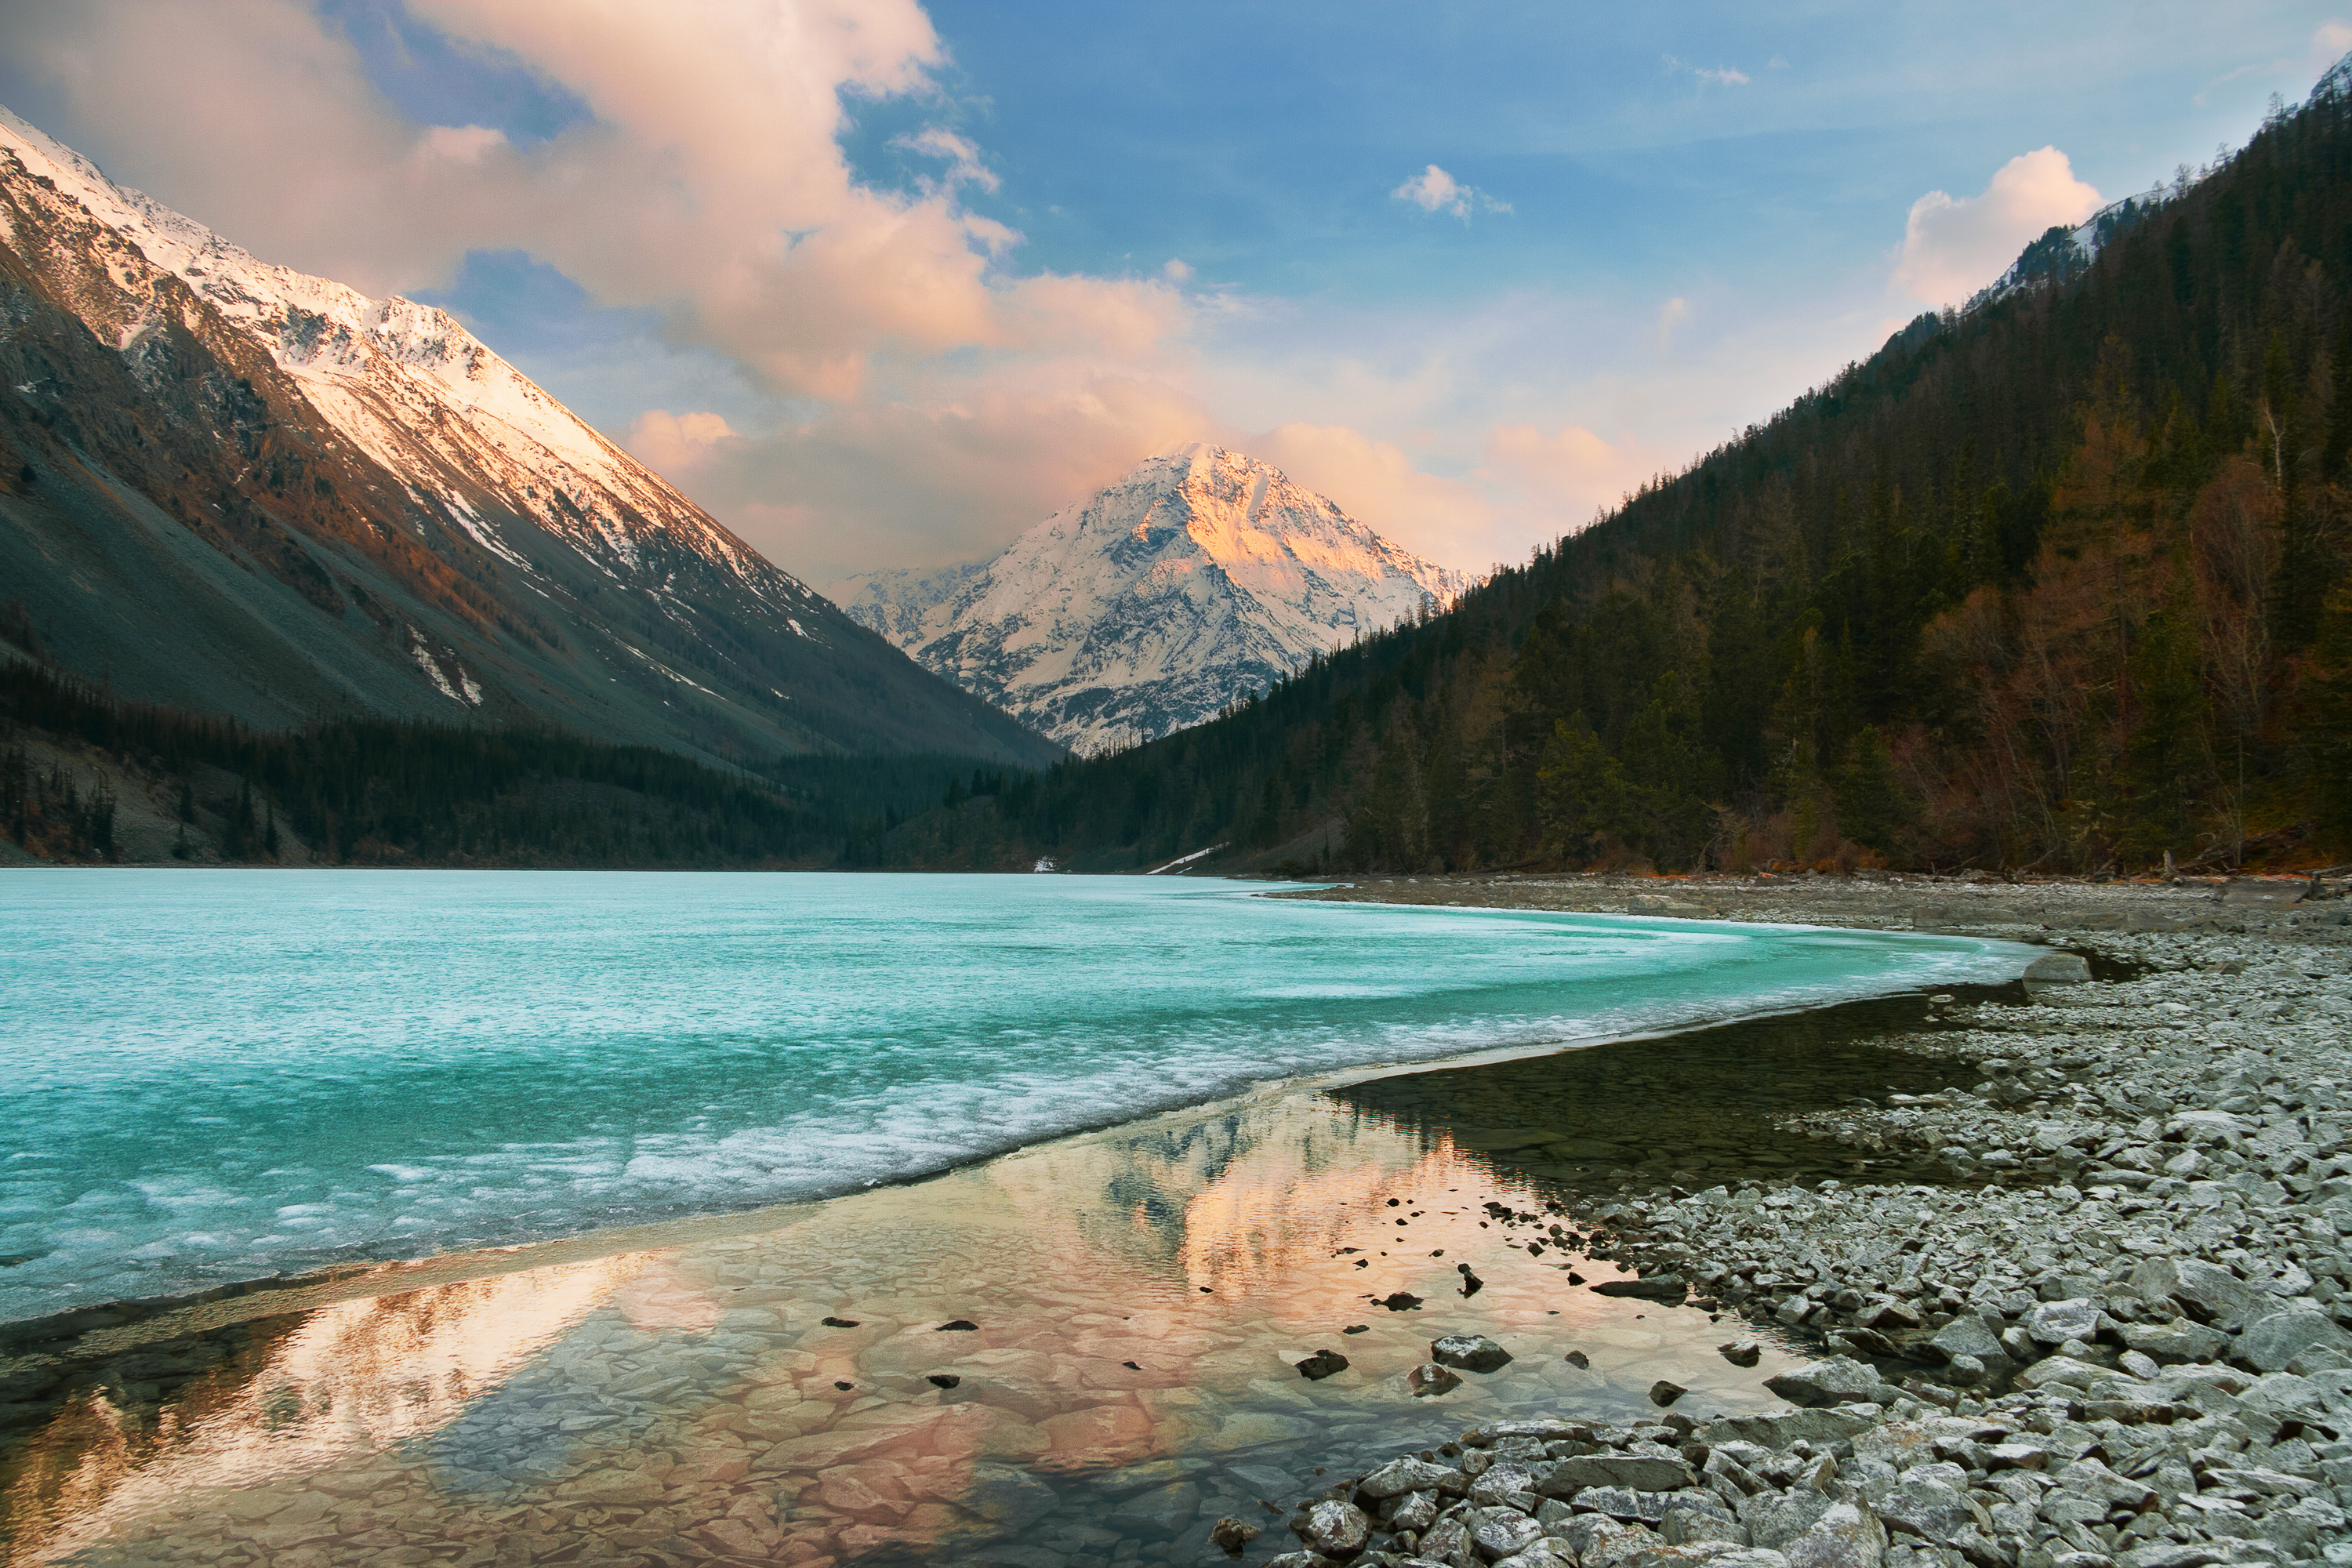 Lake Kucherla in the Altai Mountains